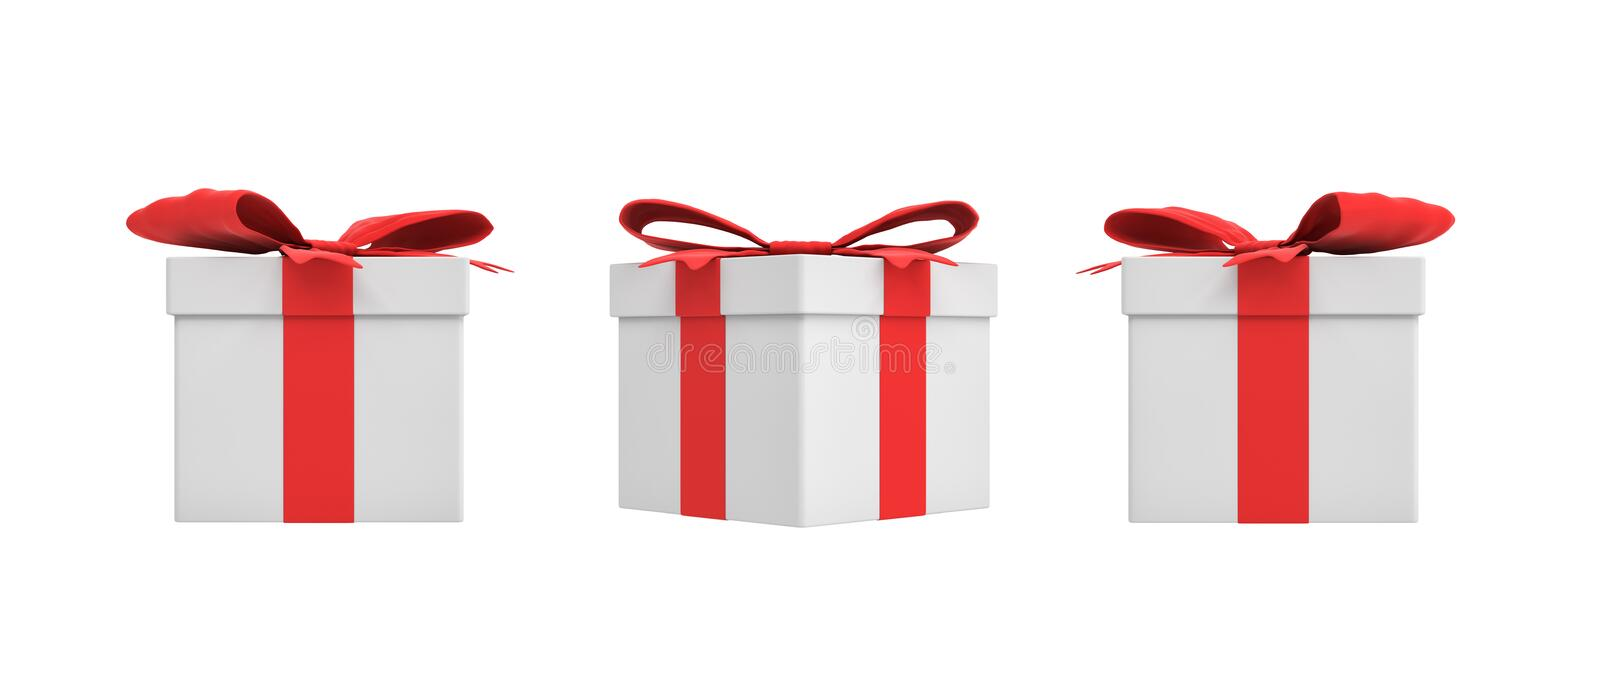 3d rendering of a white square gift box with a red ribbon bow in three different side views. vector illustration